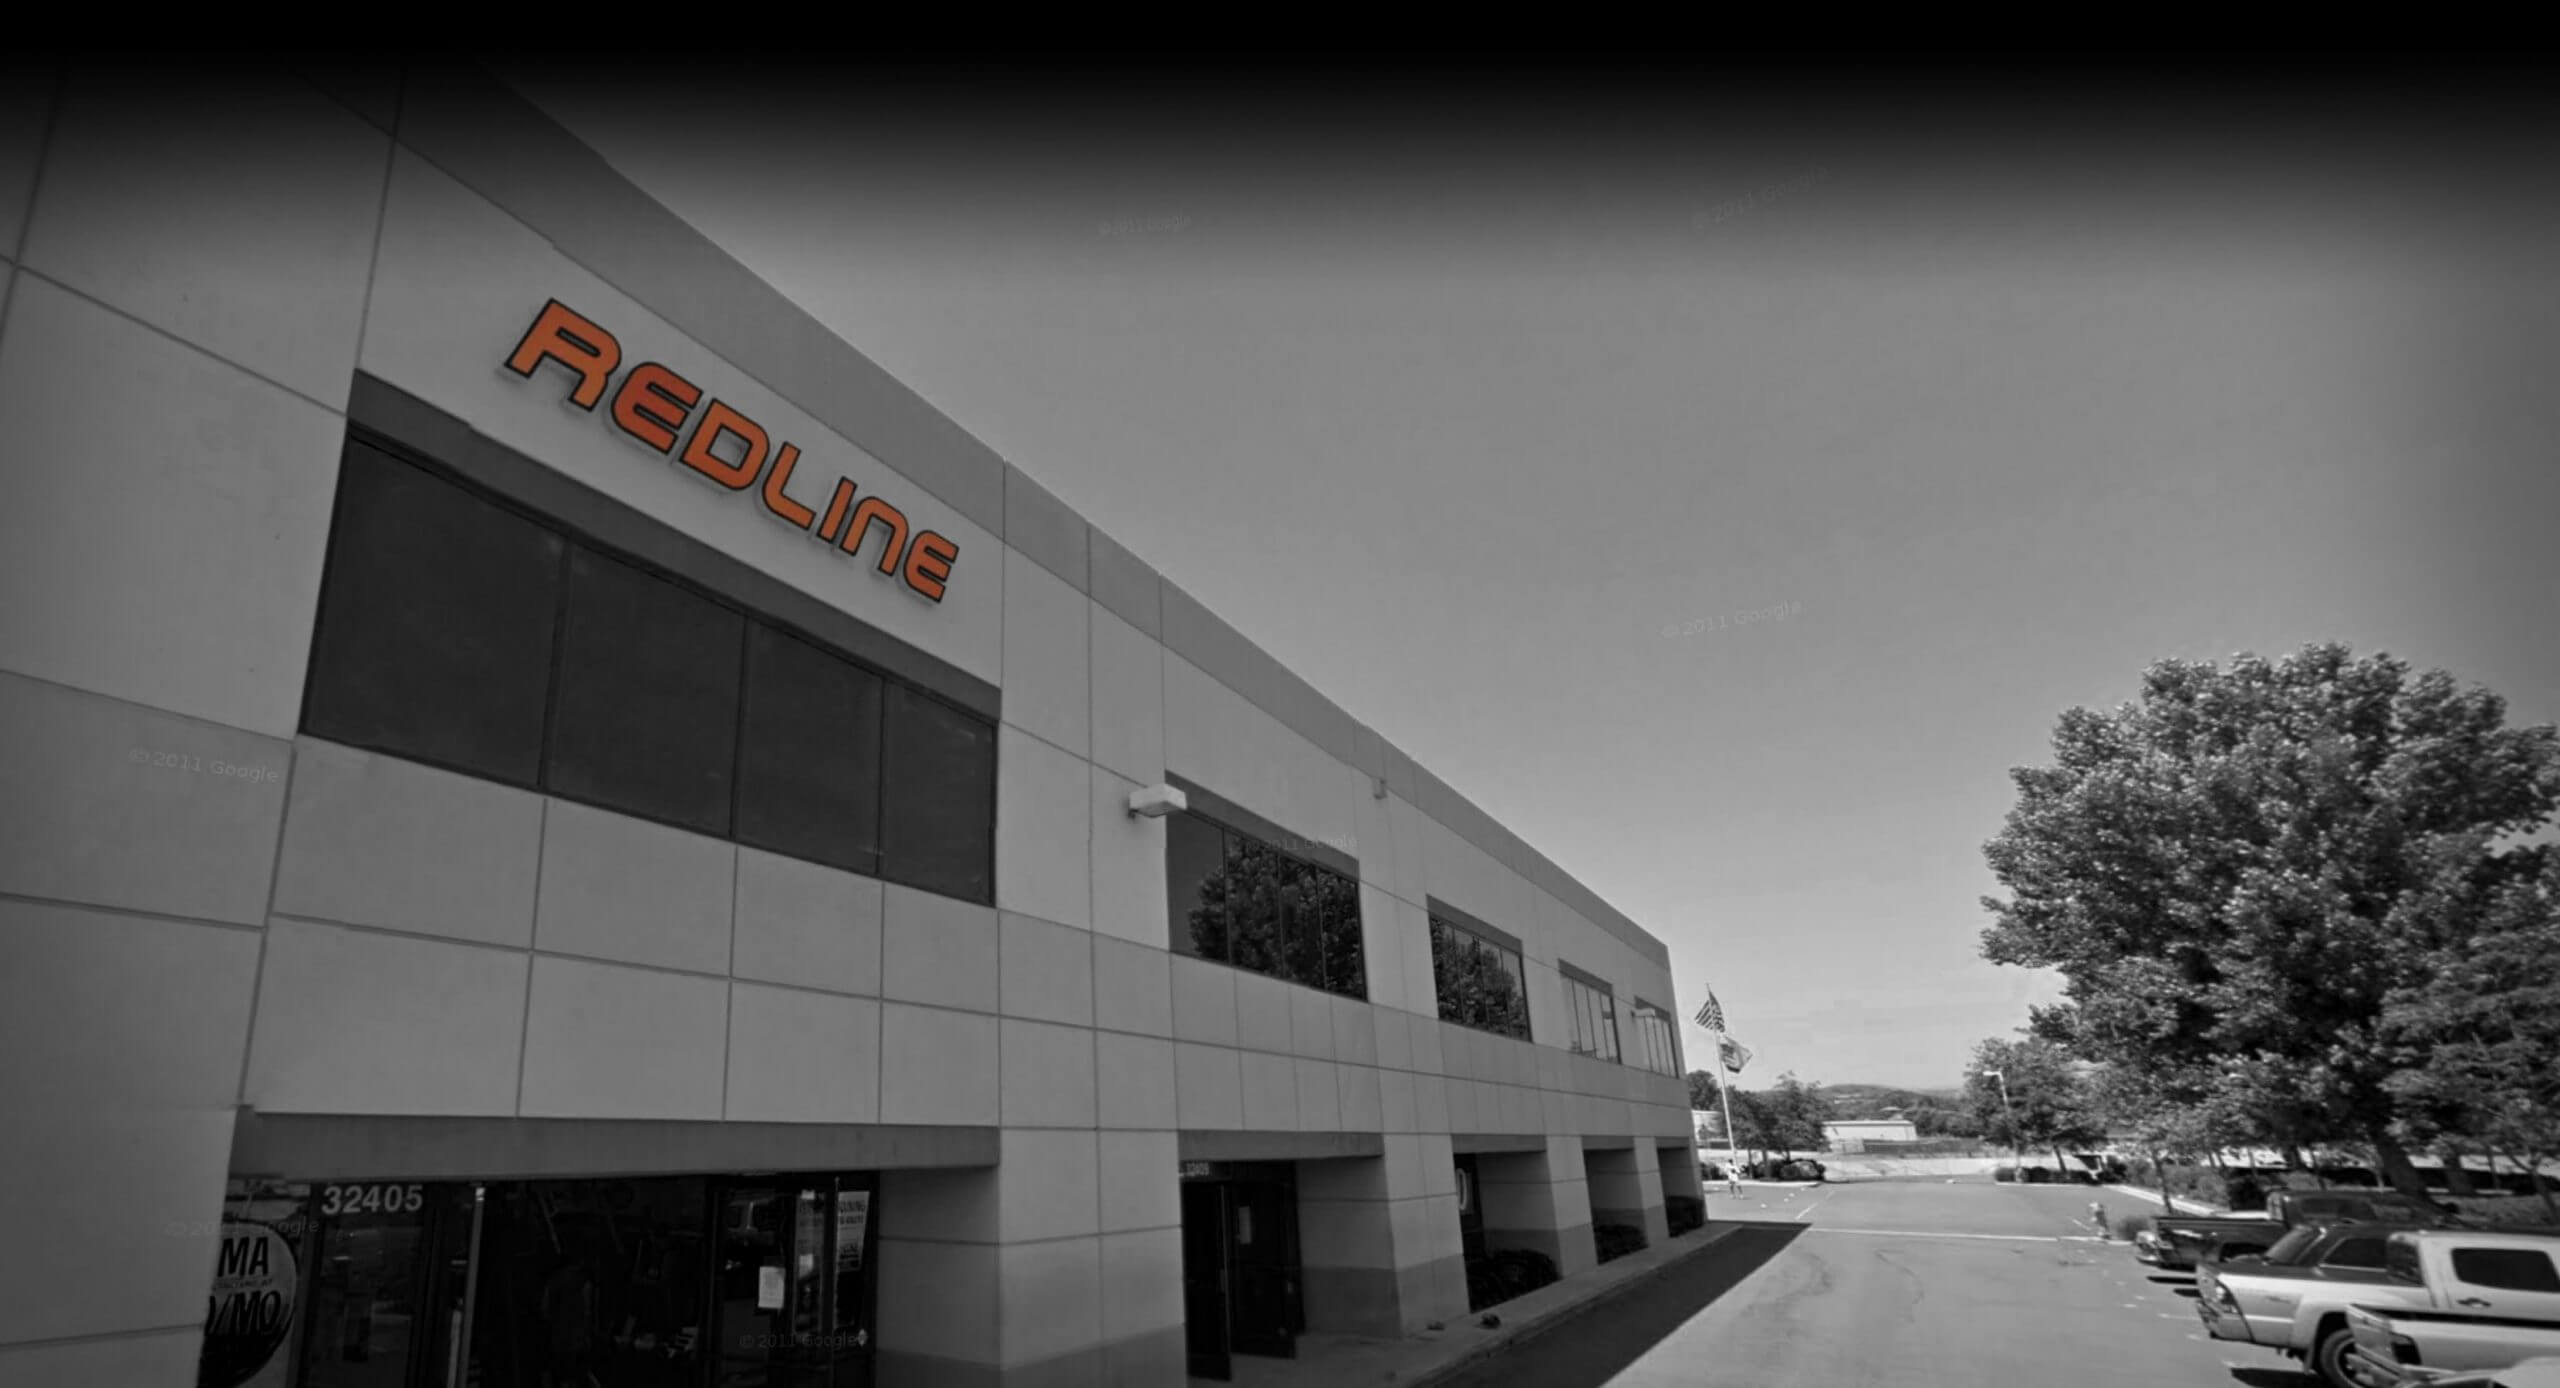 Redline building. Own a Redline youth sports franchise.